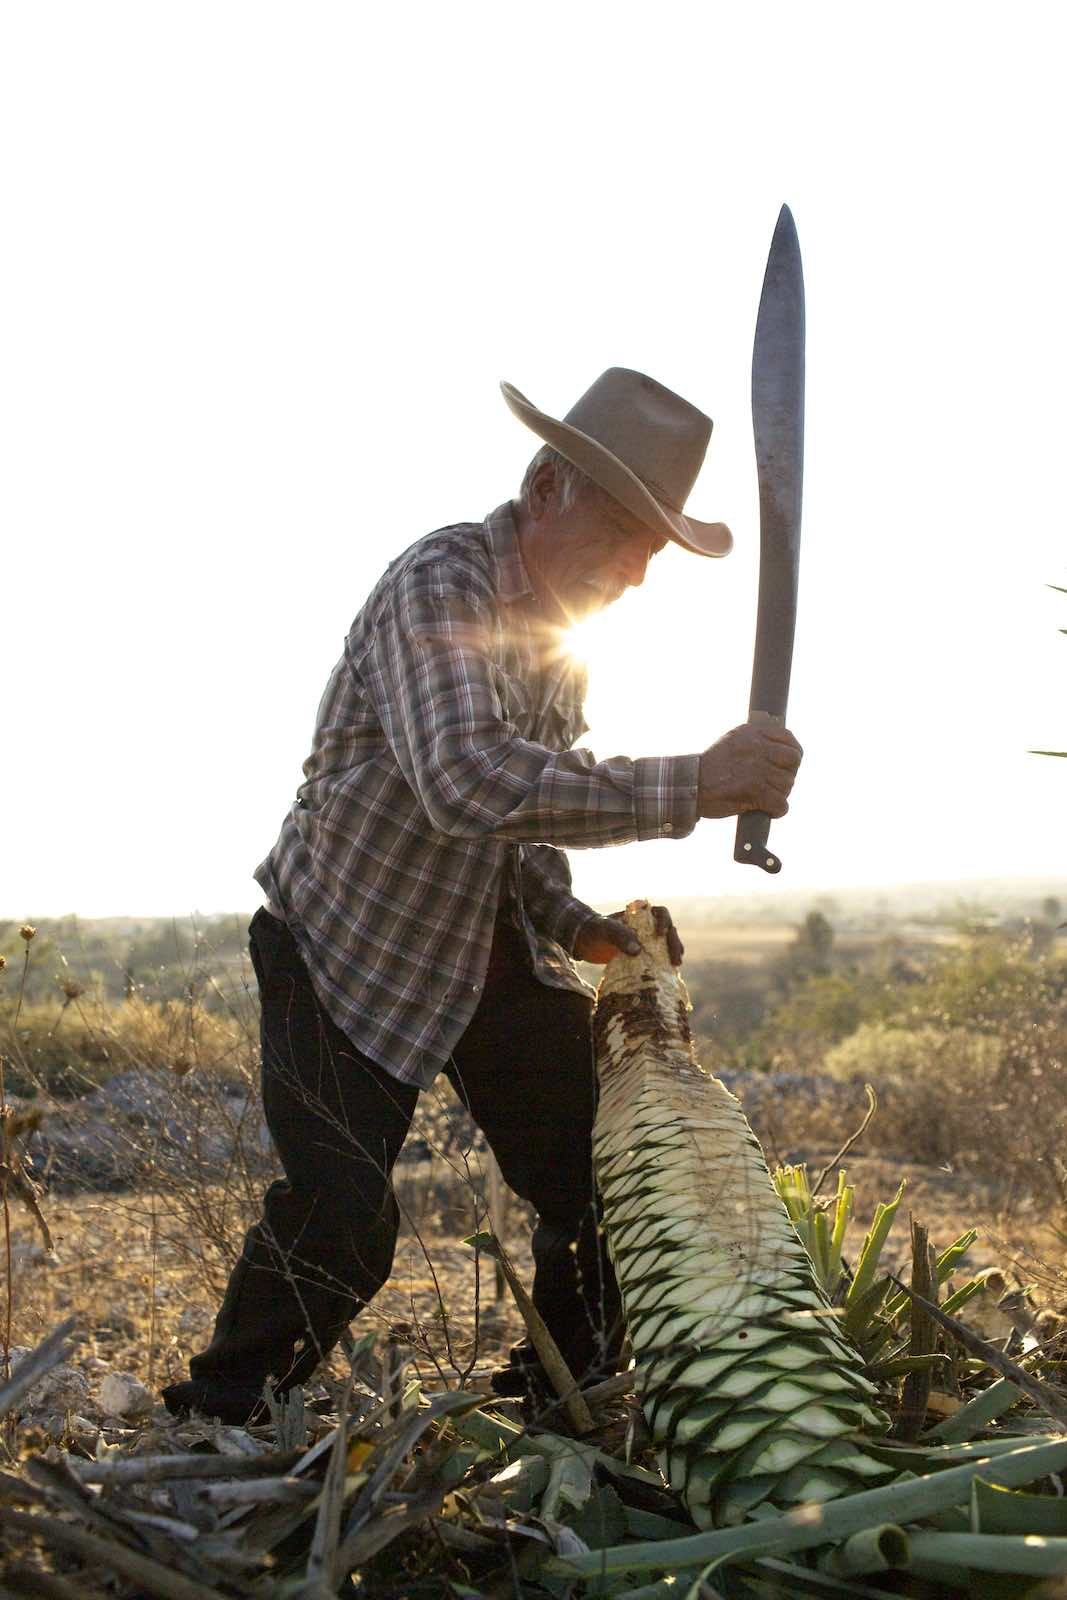 Jody Horton Photography - Farmer using machete to cut agaves.